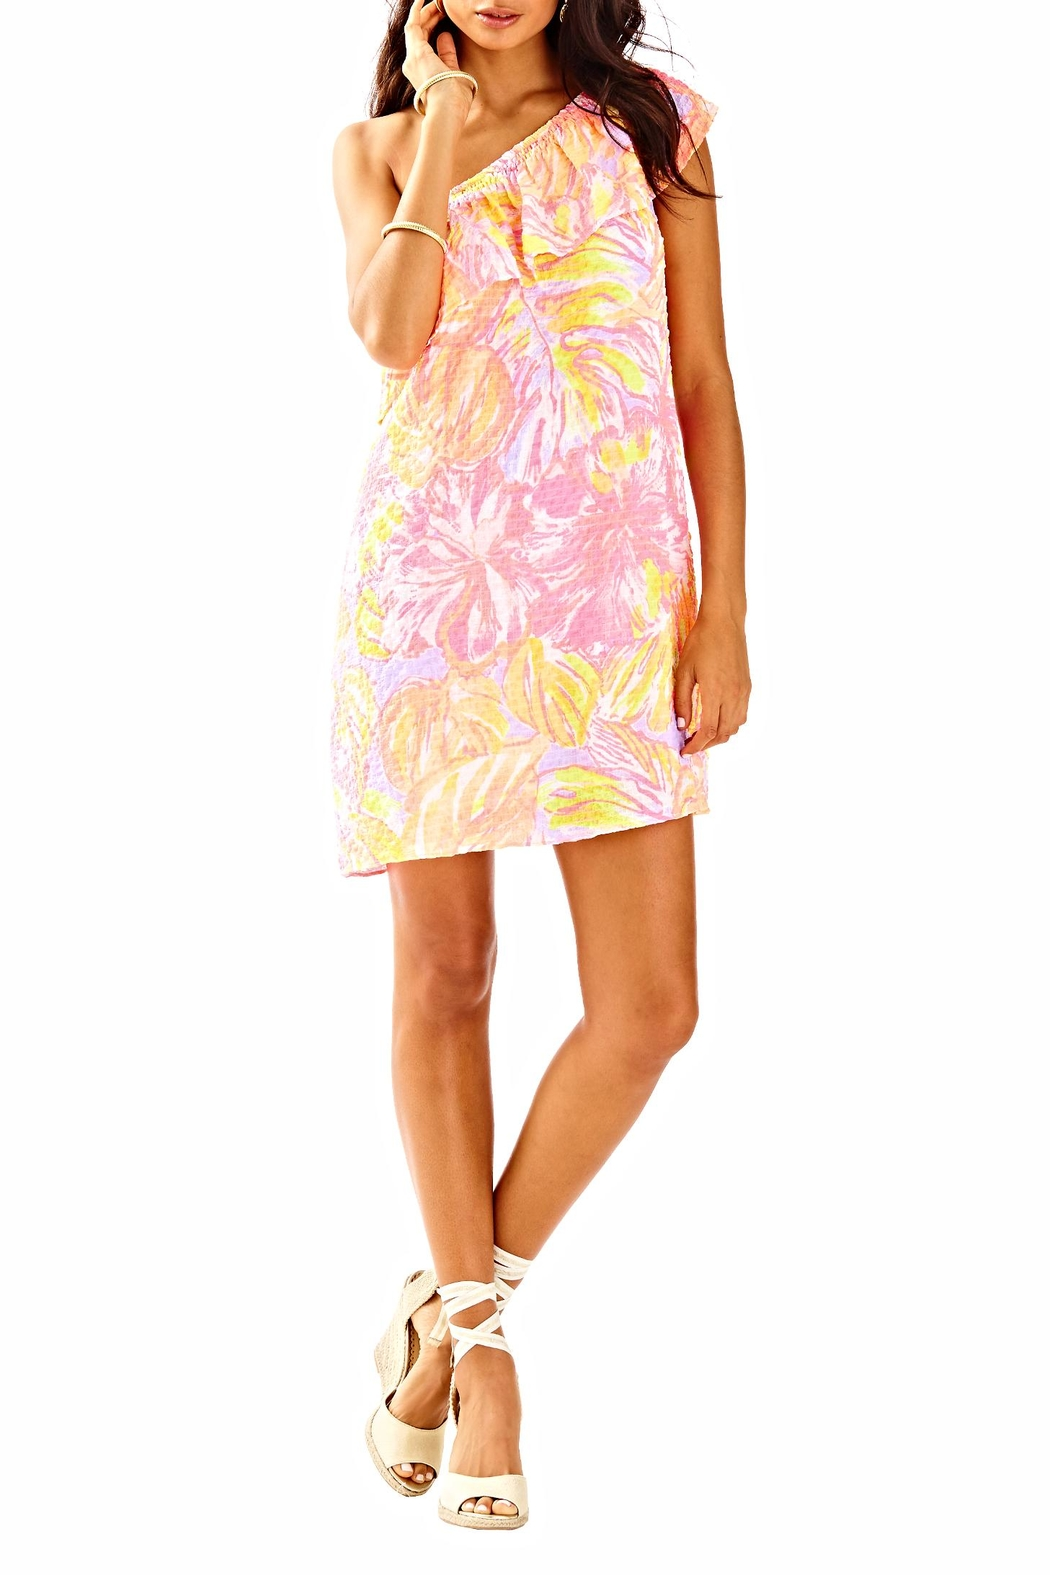 Lilly Pulitzer Emmeline Dress - Back Cropped Image